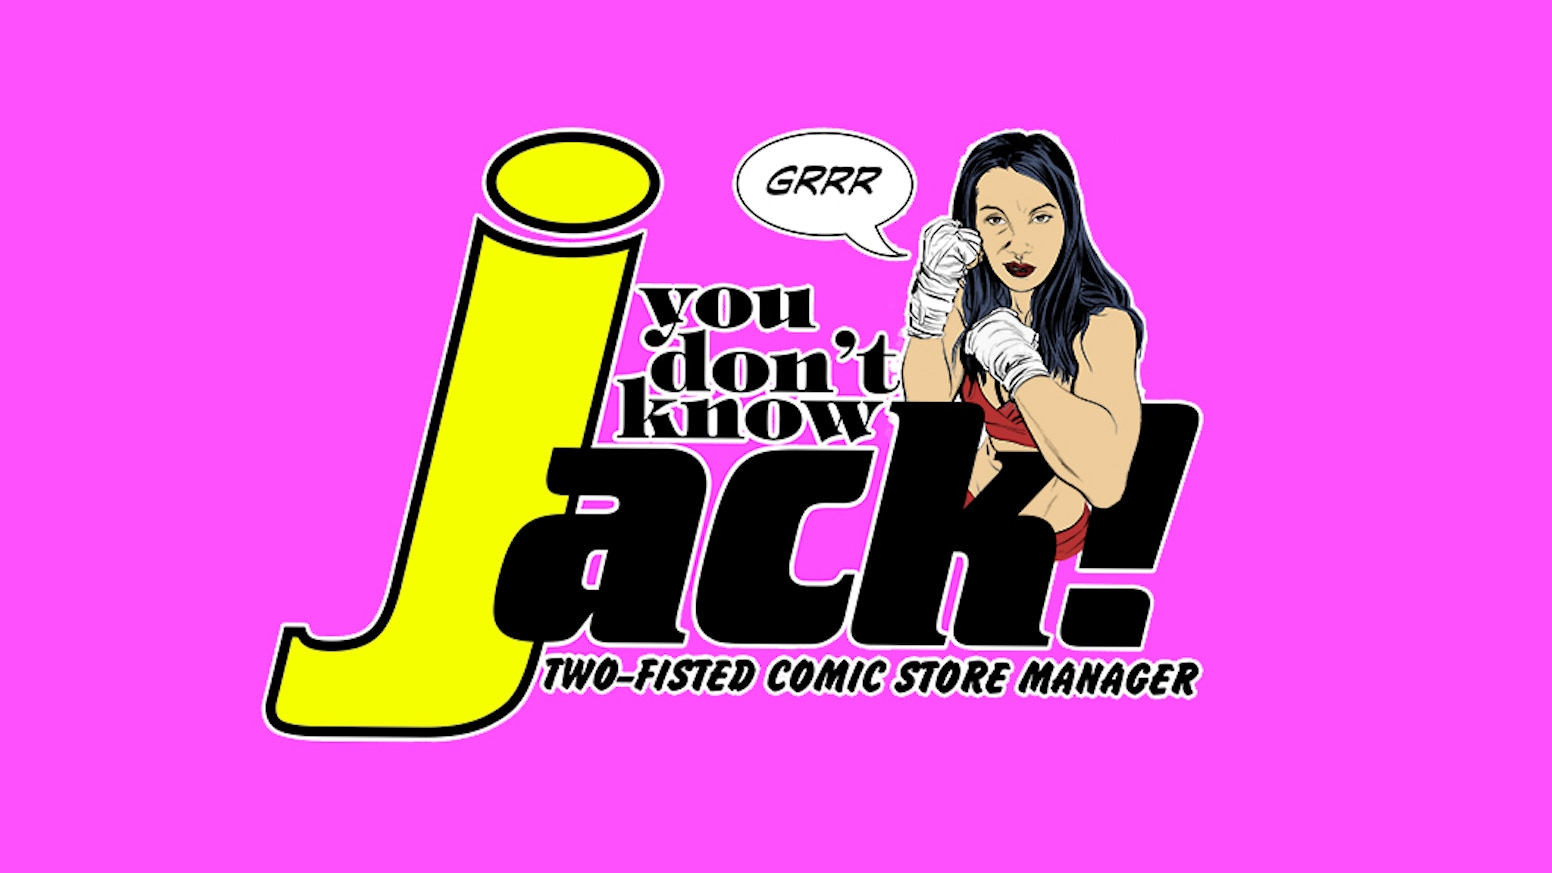 You Don't Know Jack, a 48-page one-shot comic book by Dave Sim and Carson Grubaugh.